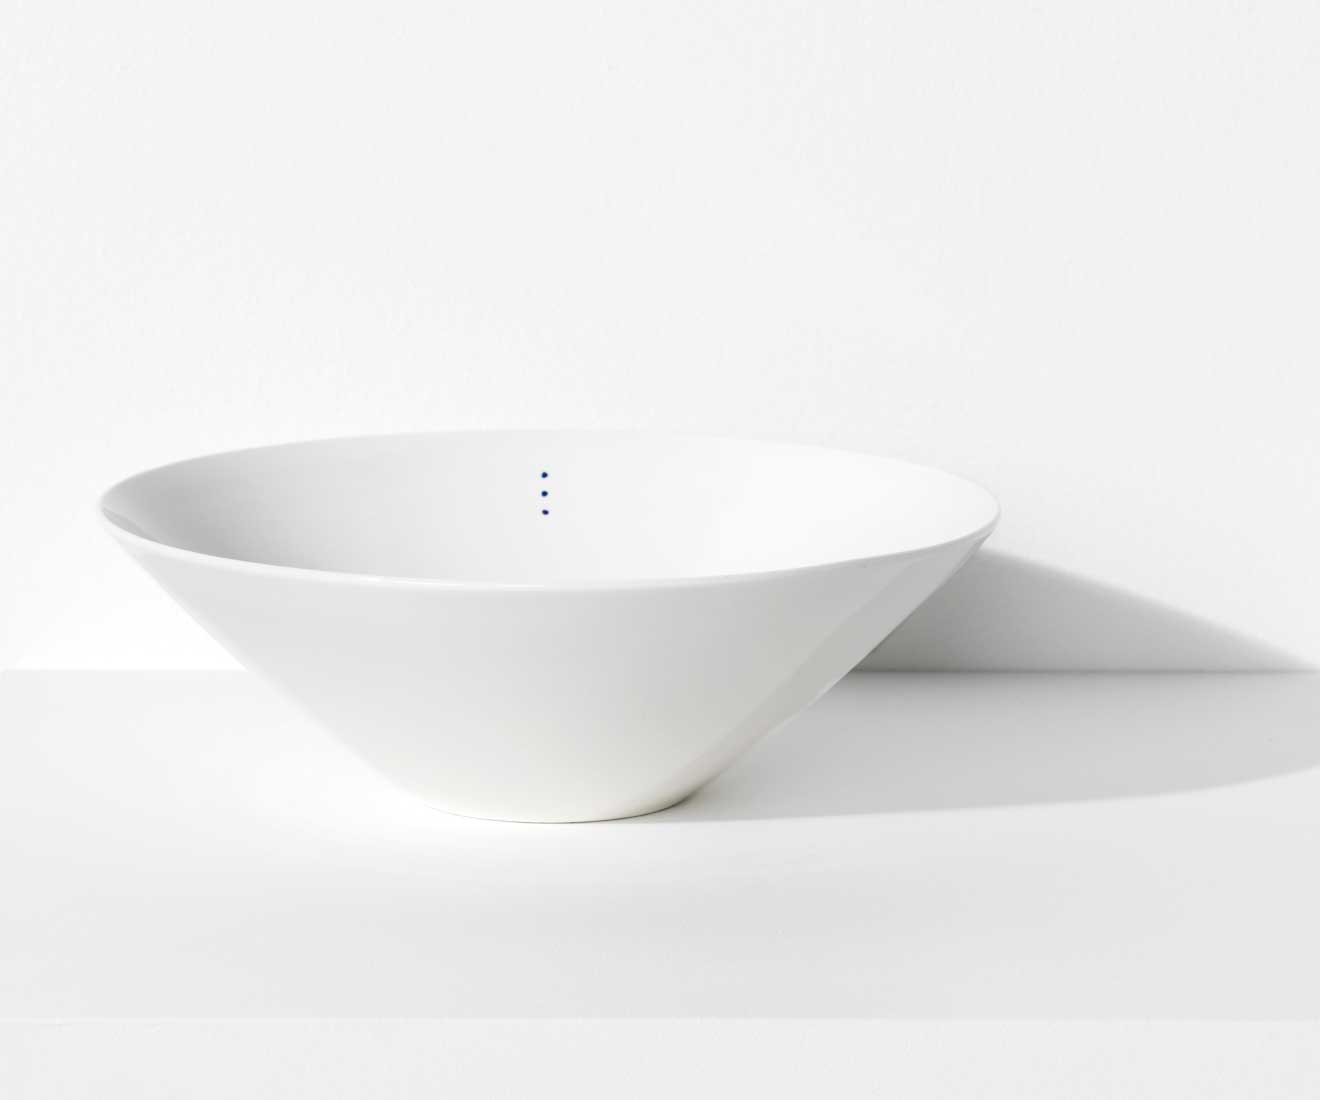 Motarasu Products - Shiro bowl Large with 3 dots by Stilleben